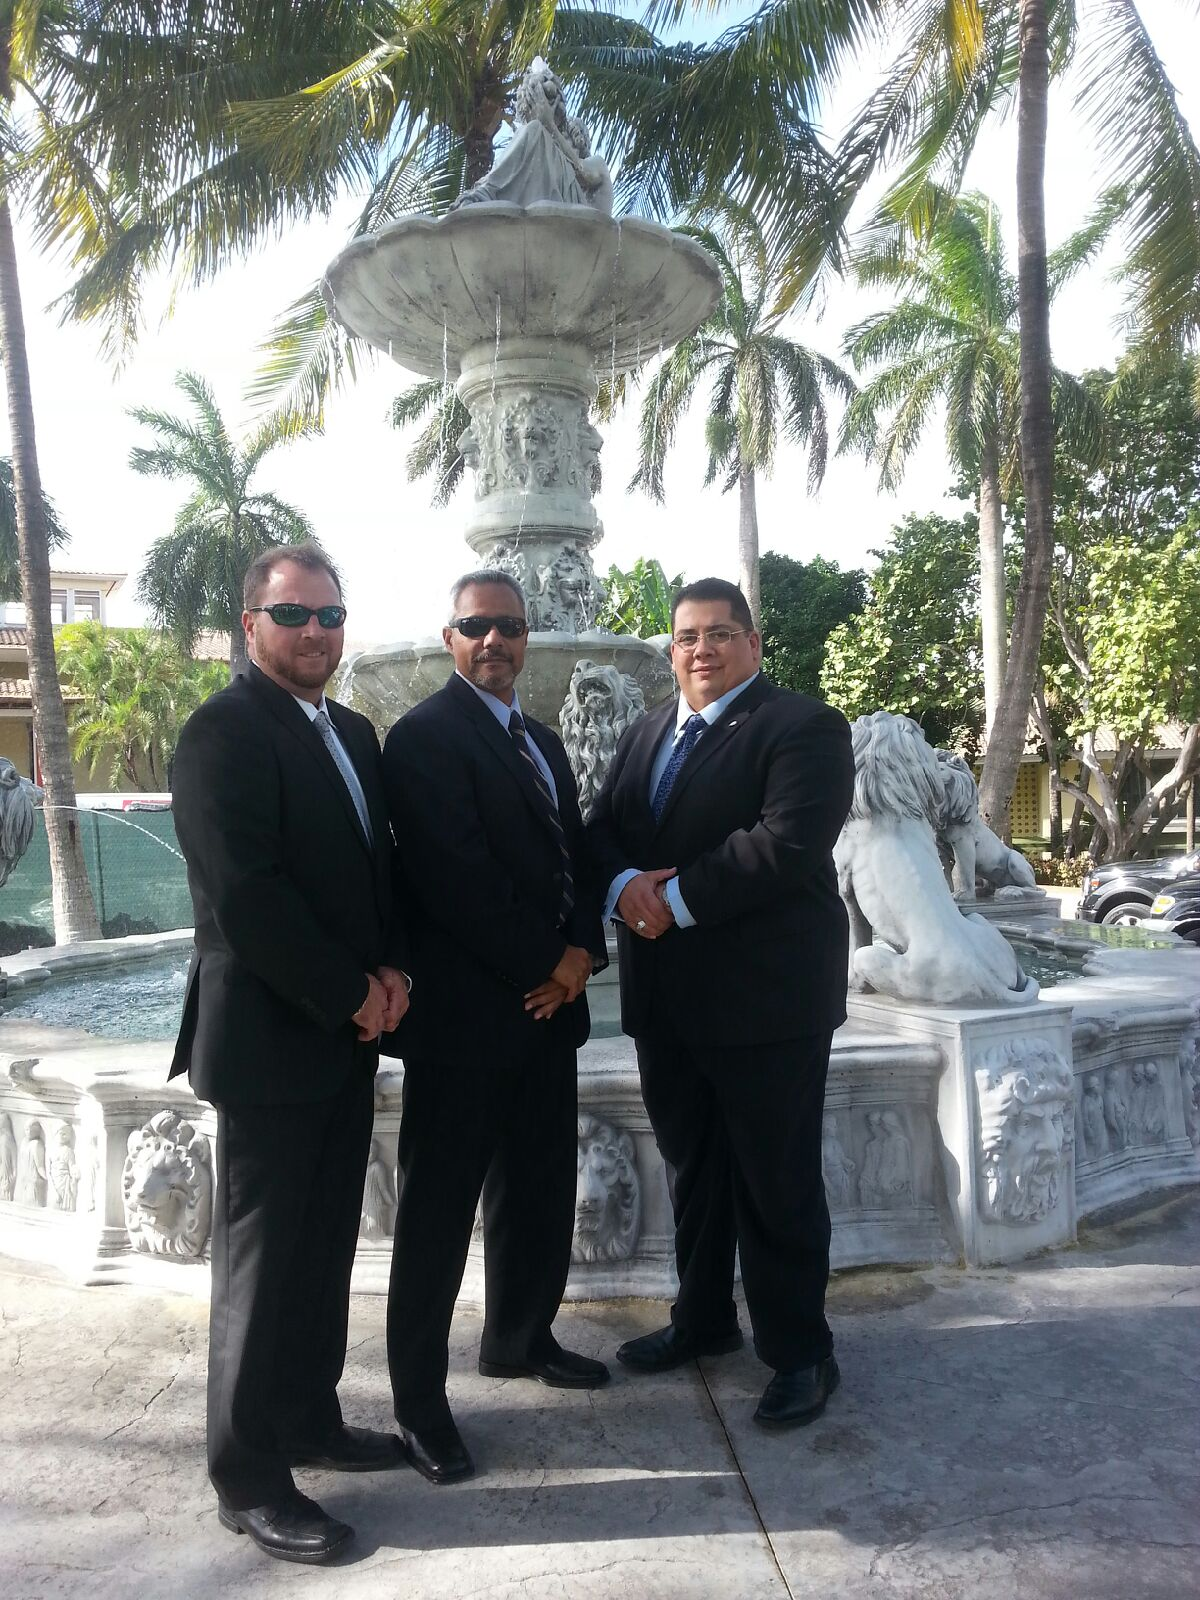 Miami Dade Schools Police Officers Offer Dignitary Protection